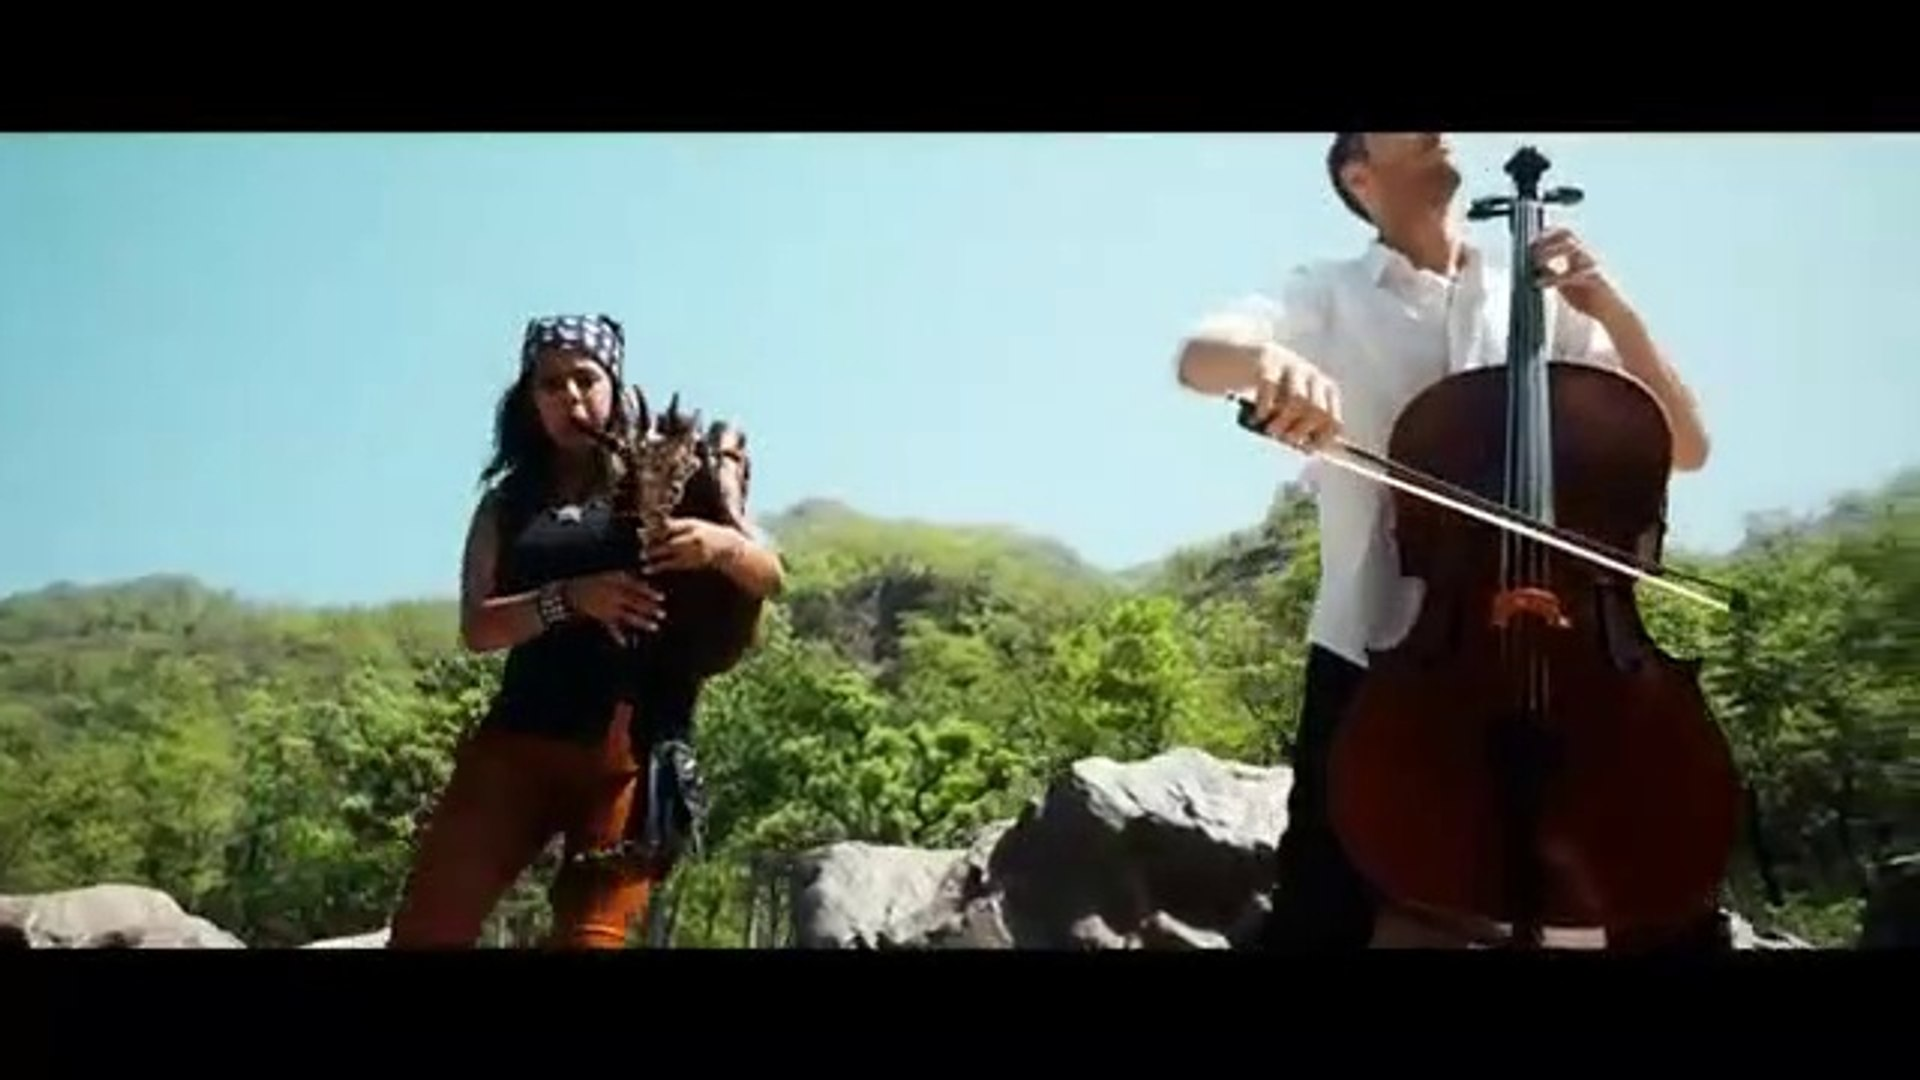 Pirates of the Caribbean Theme Song Bagpipes & Cello (He's a Pirate)